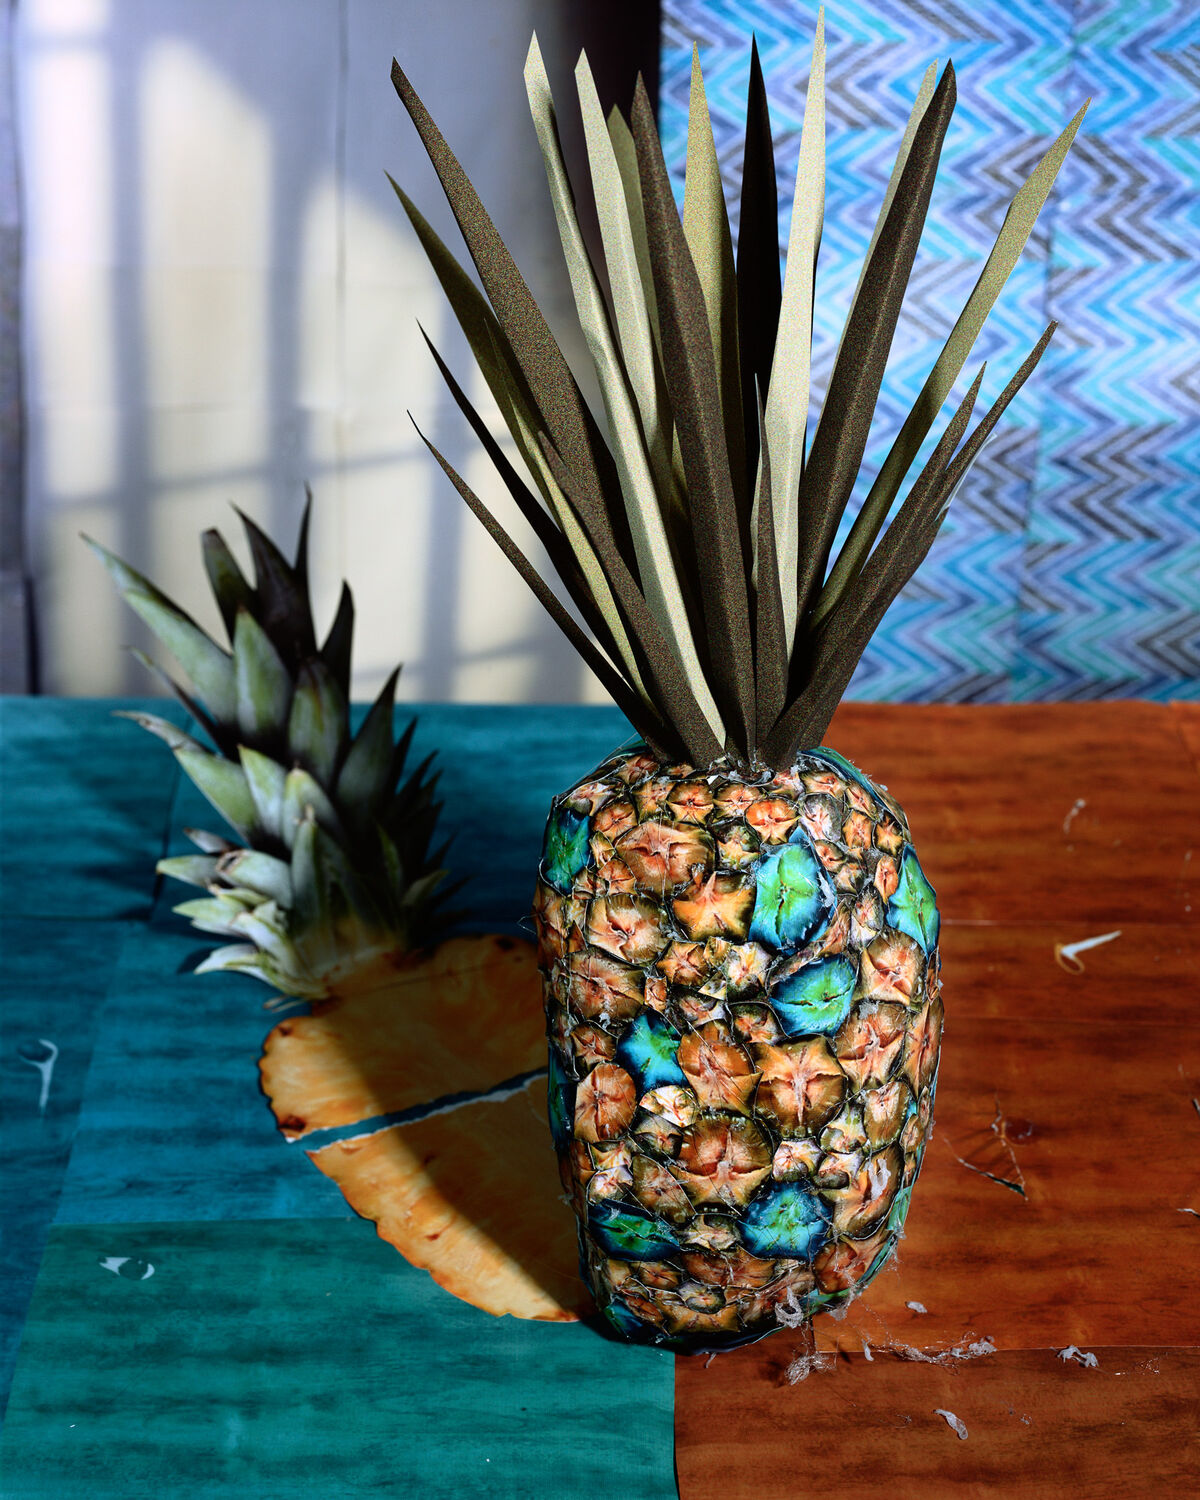 Daniel Gordon, Pineapple and Shadow, 2011; Image from Feast for the Eyes (Aperture, 2017). Courtesy of the artist and James Fuentes Gallery, New York.